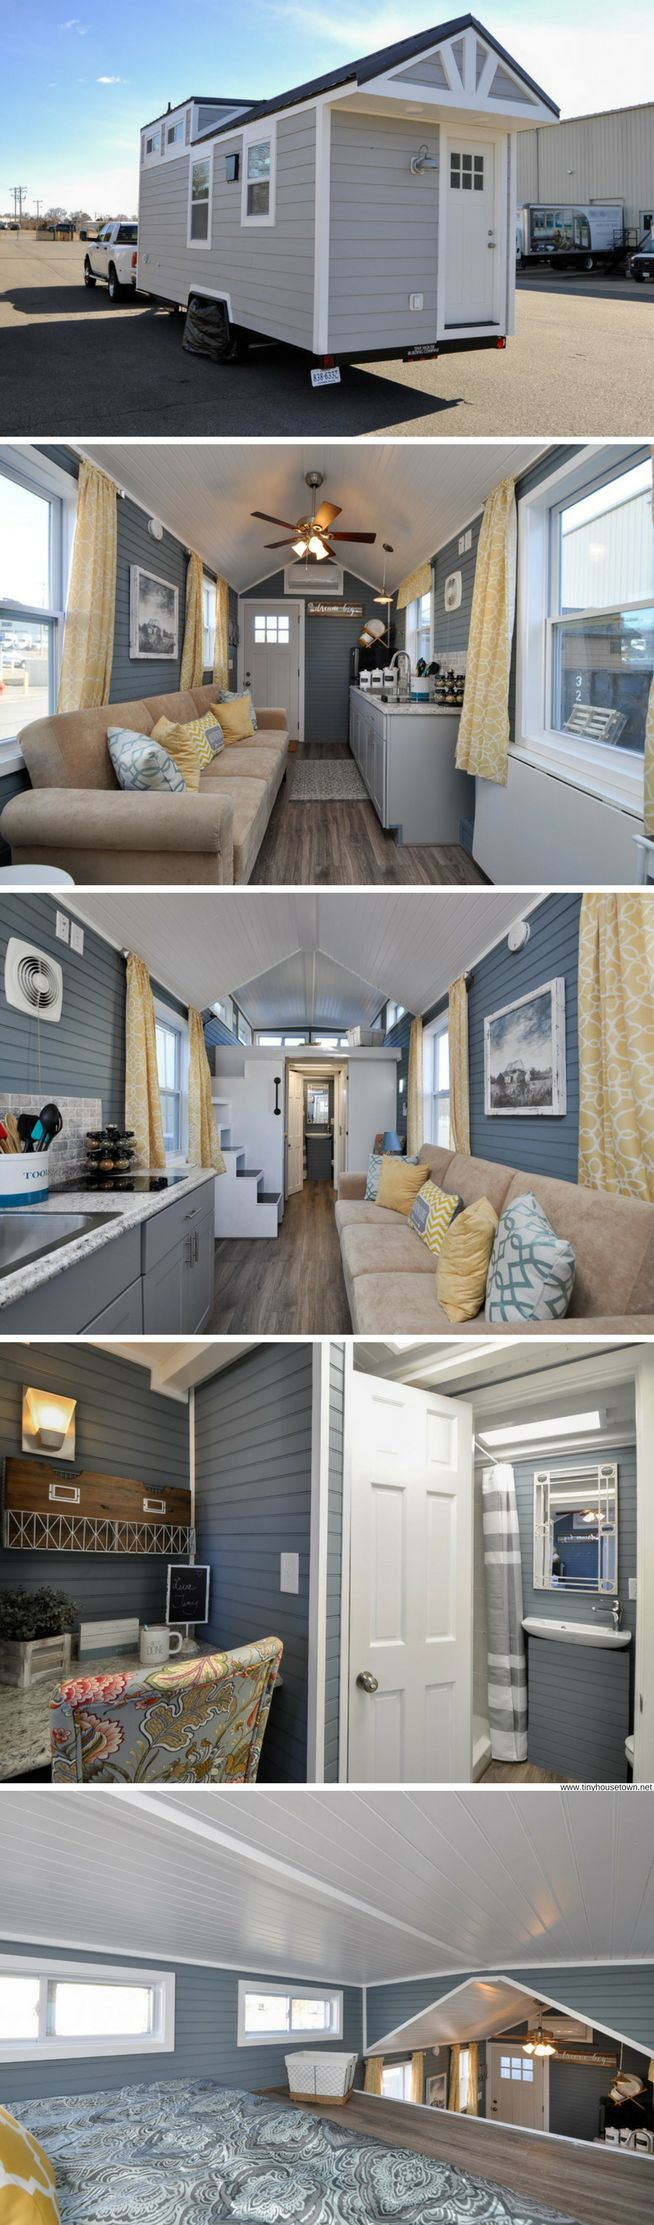 The Laurel: a 272-sq-ft tiny house with a home office, full kitchen, and two bedrooms!